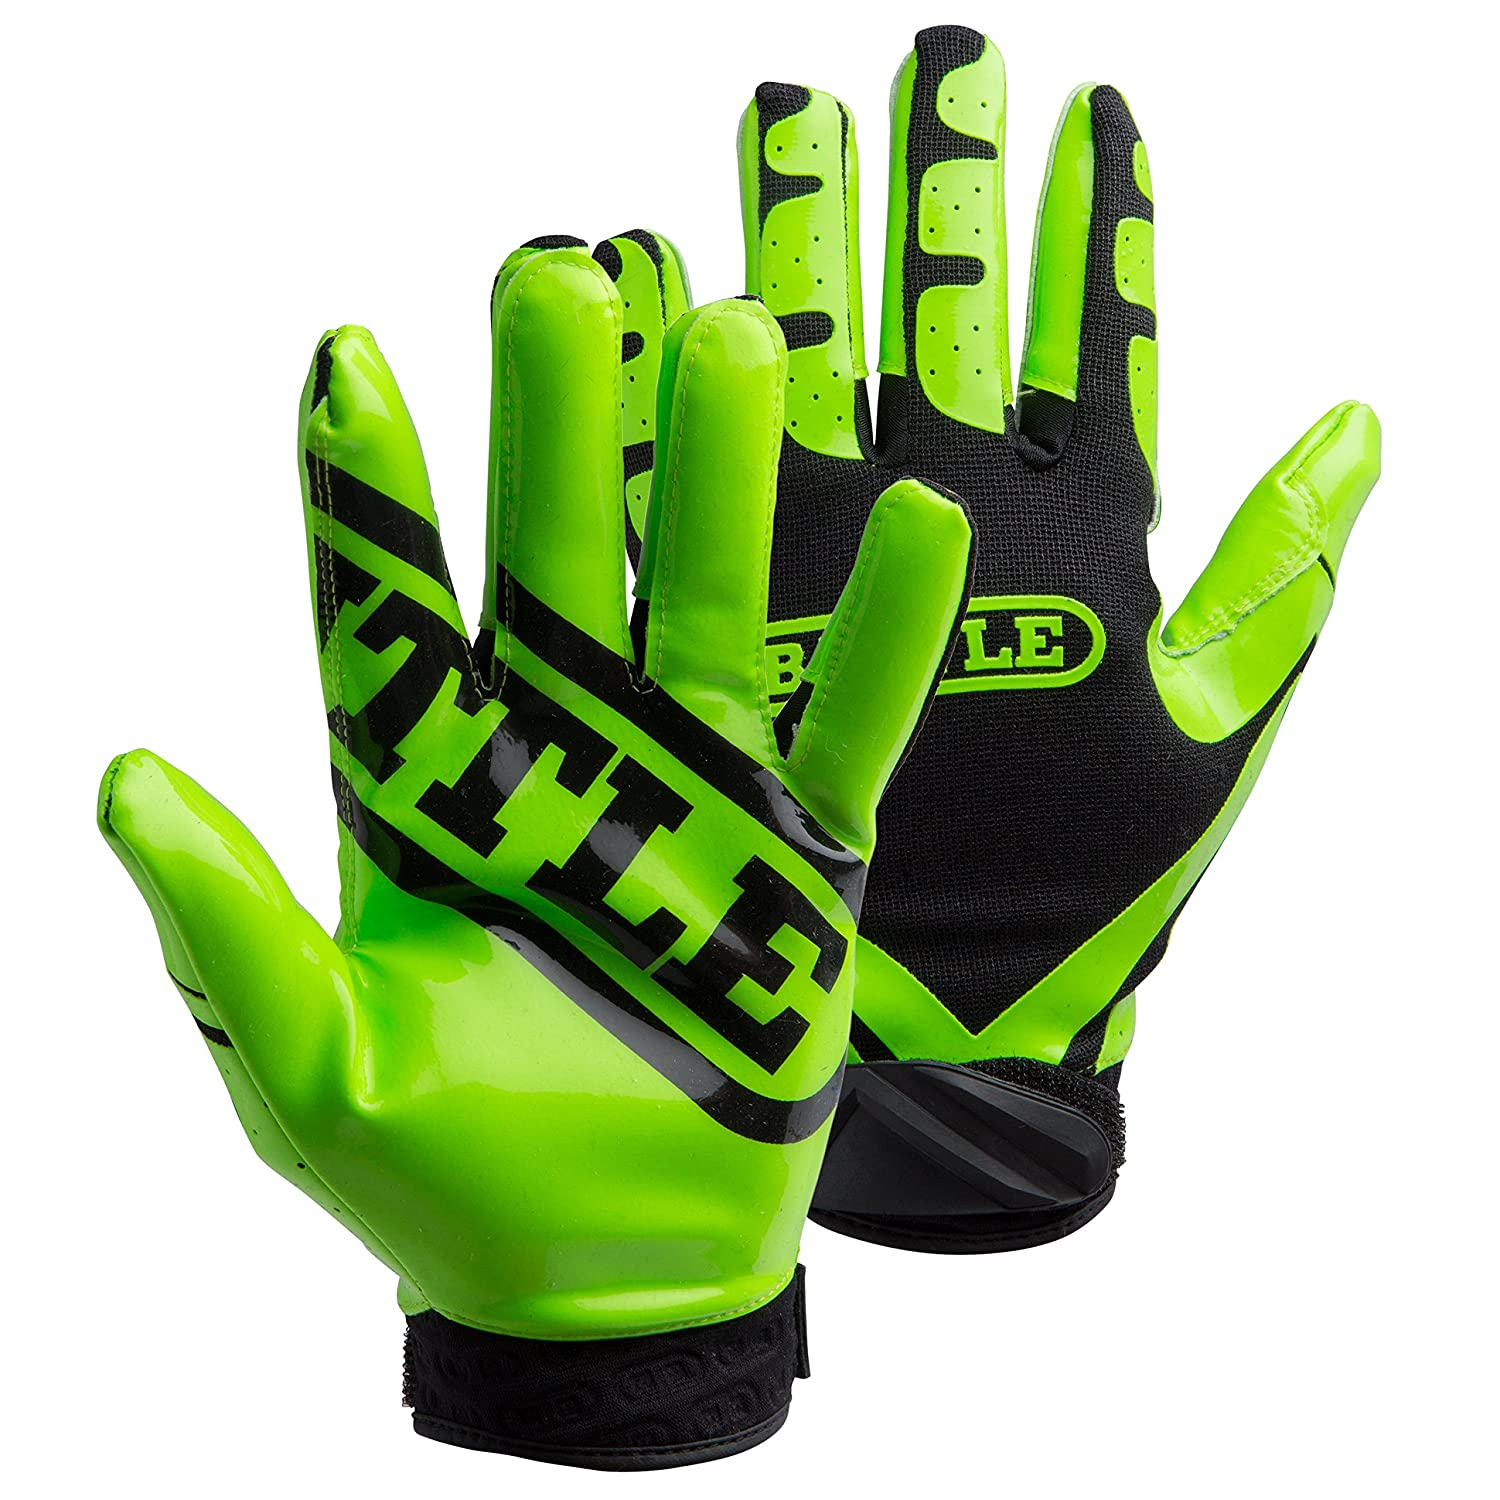 810f44acf29 Top 10 Best Football Gloves – (Comprehensive Reviews 2019) - Sports ...